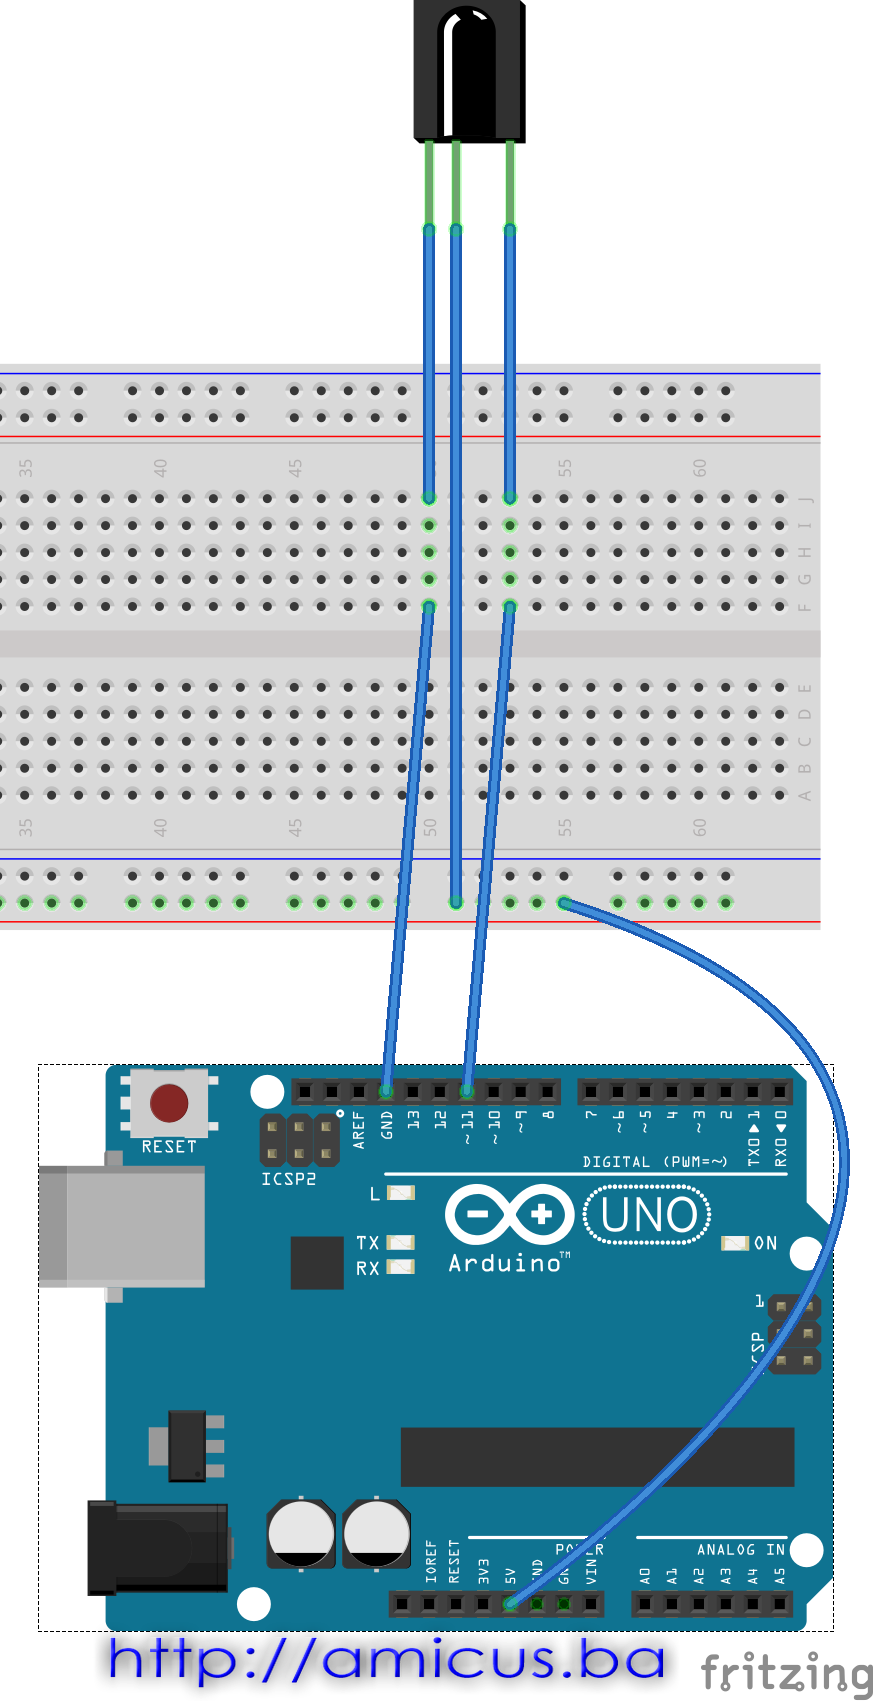 IR remote - breadboard